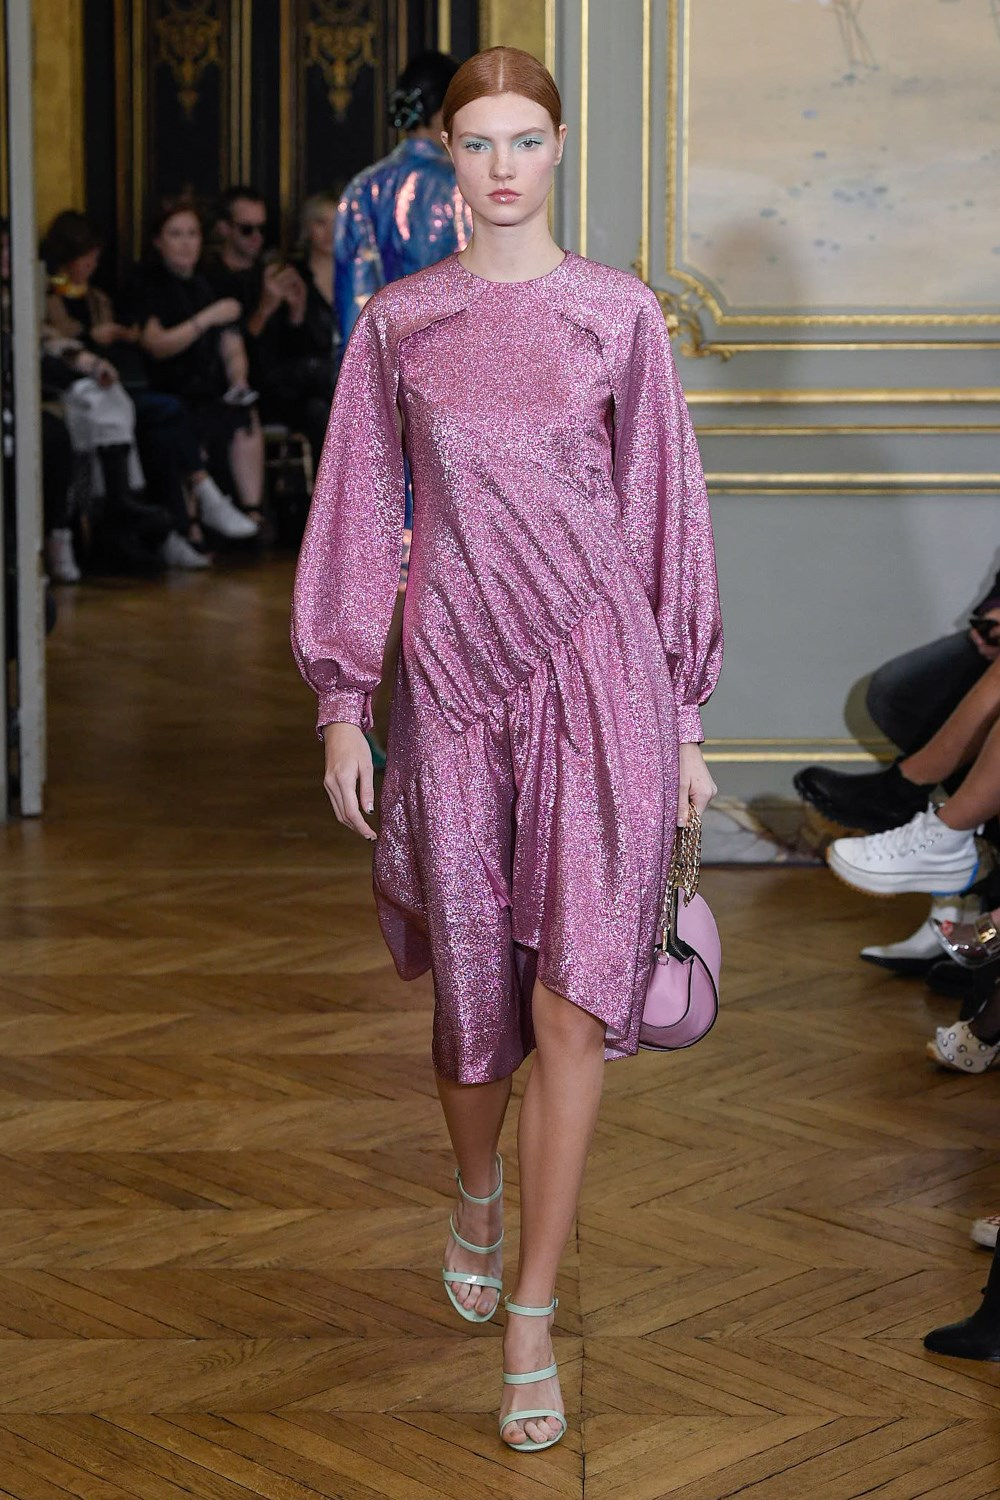 Christian Siriano Spring 2020 Fashion Show